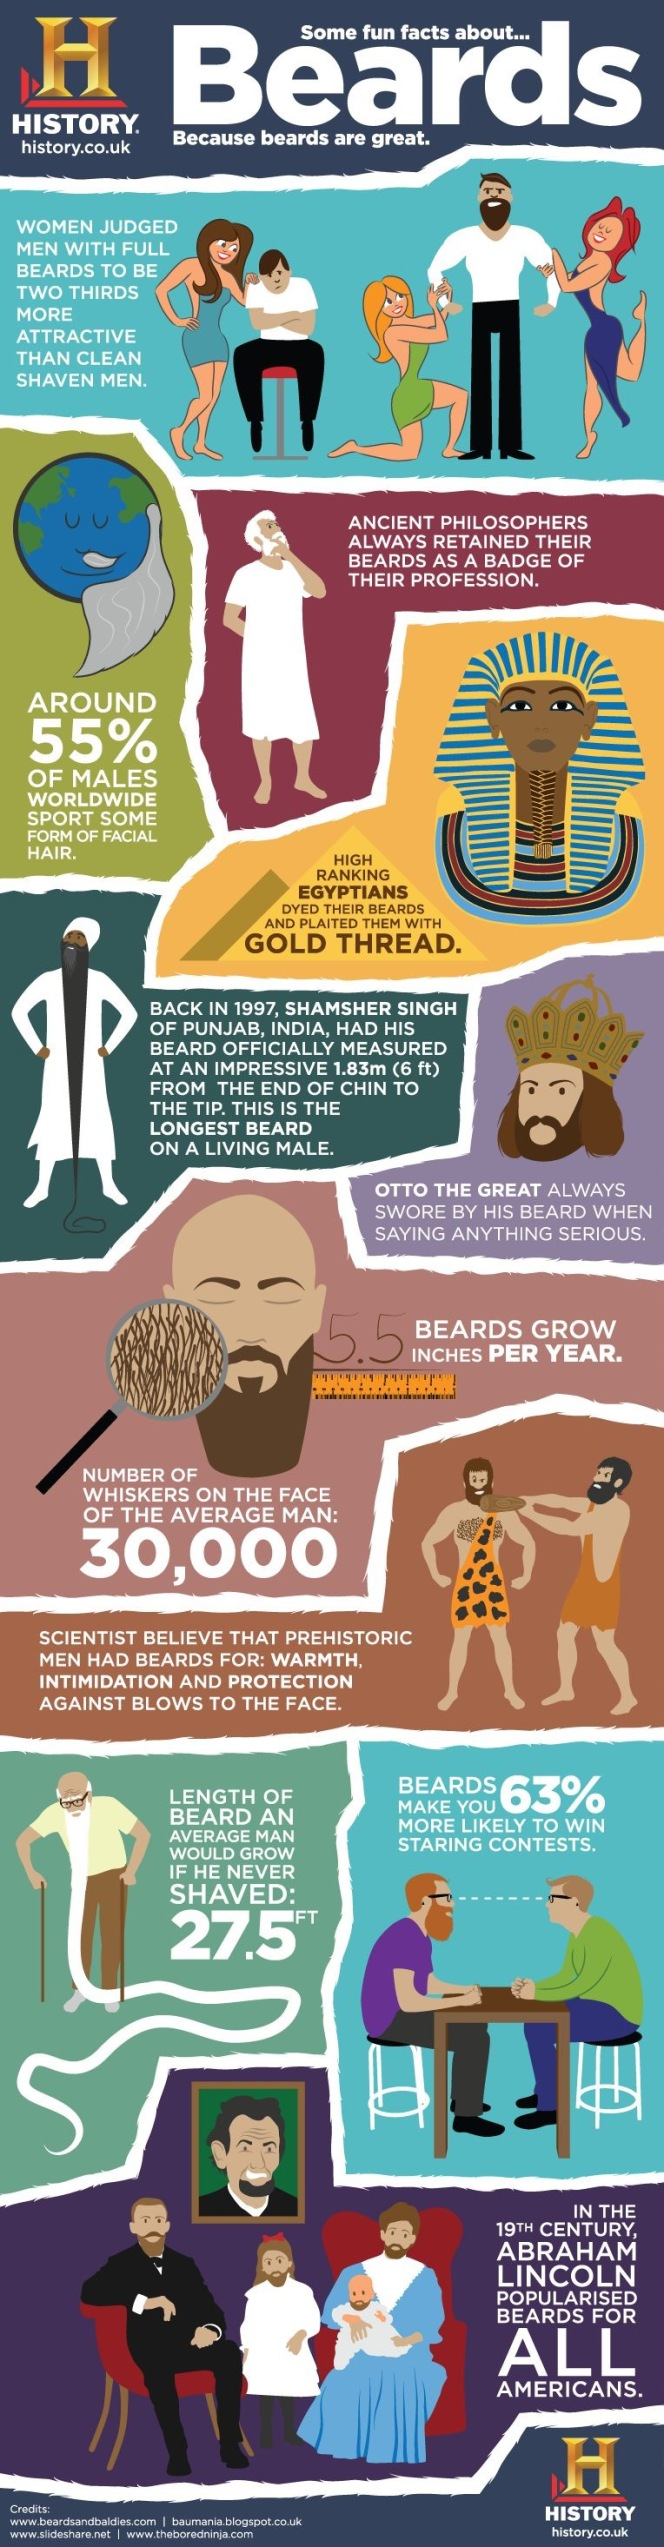 Fun facts about beards from history.co.uk taken from the article beards by kimgriffithsenglish.com the webpage to improve and practice your English